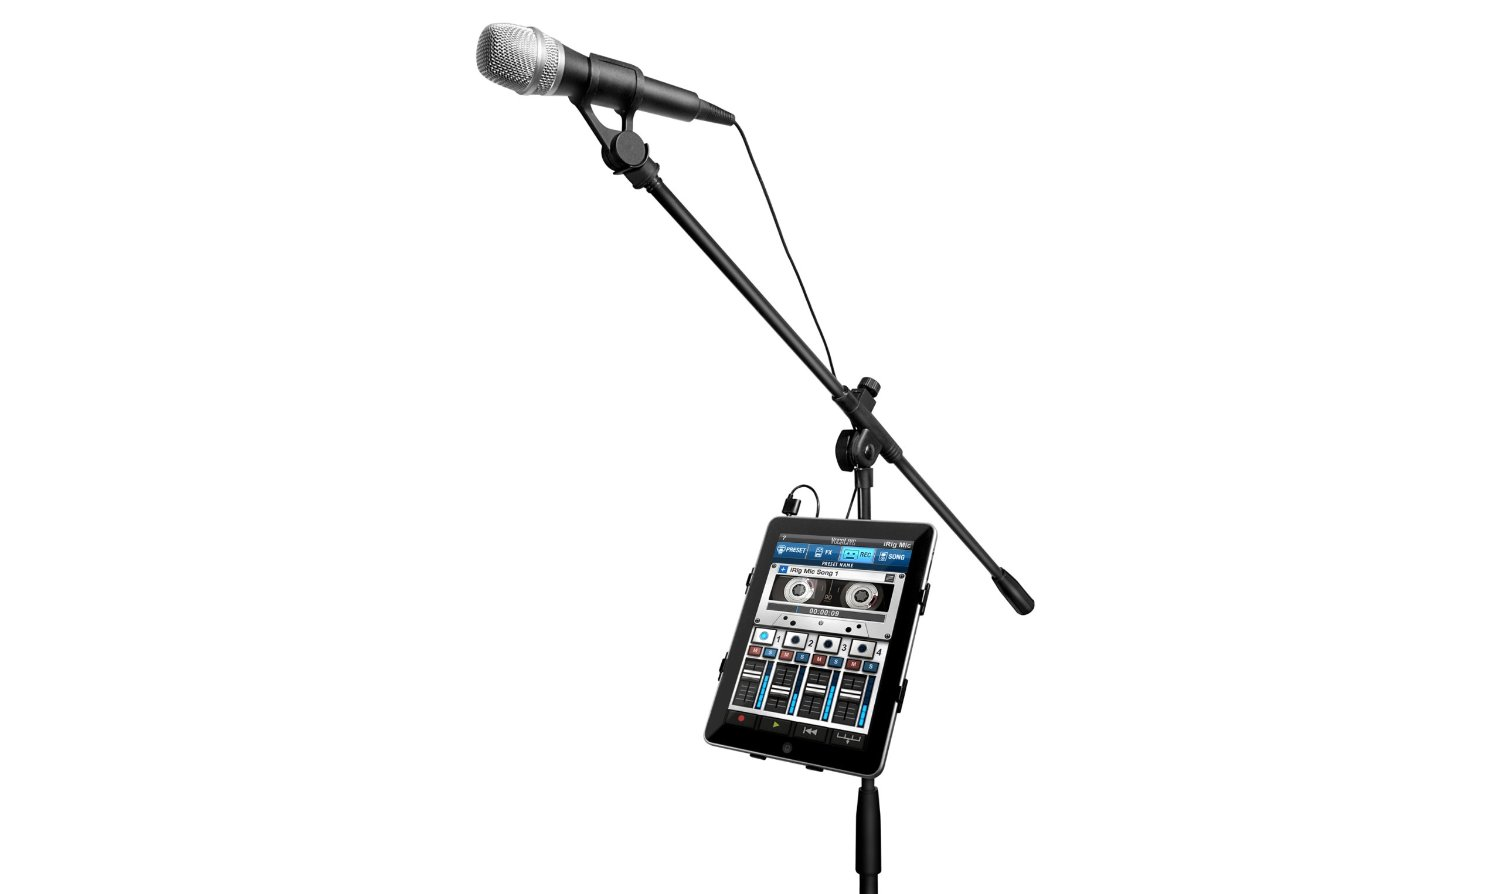 Dynamic Stage Vocal Microphone For Your Ios Devices By Ik